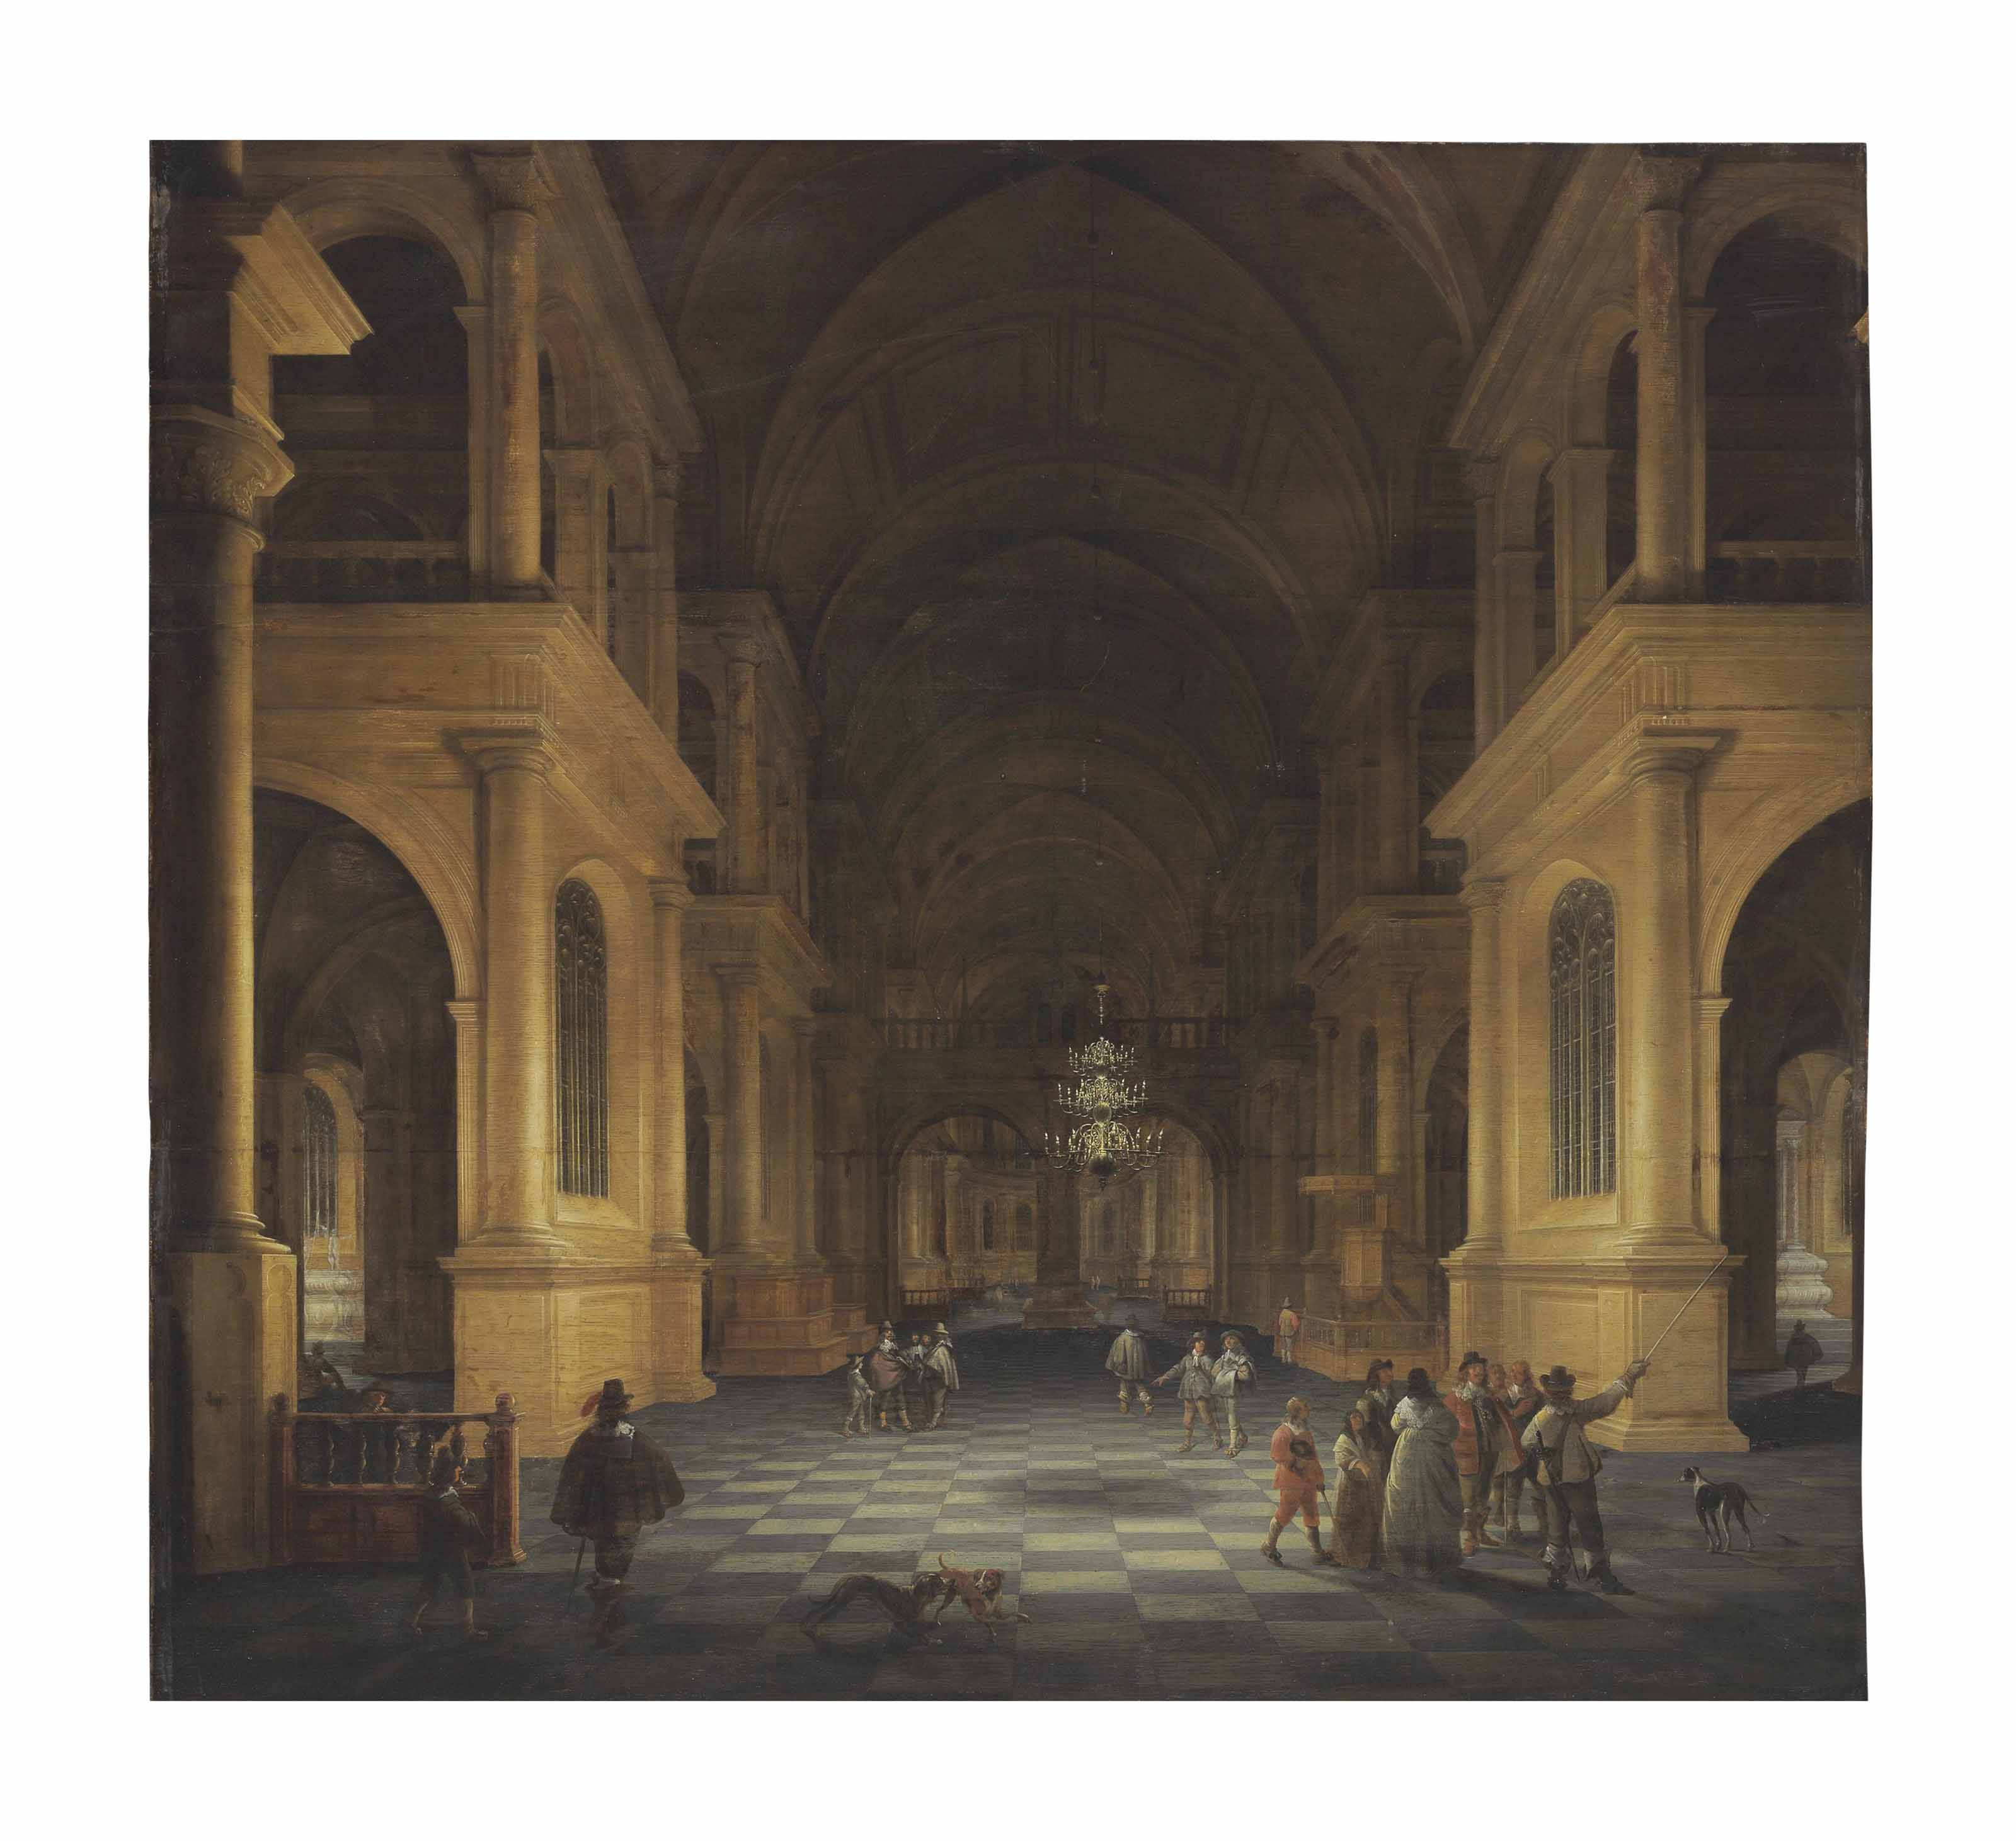 A darkened church interior with elegant figures